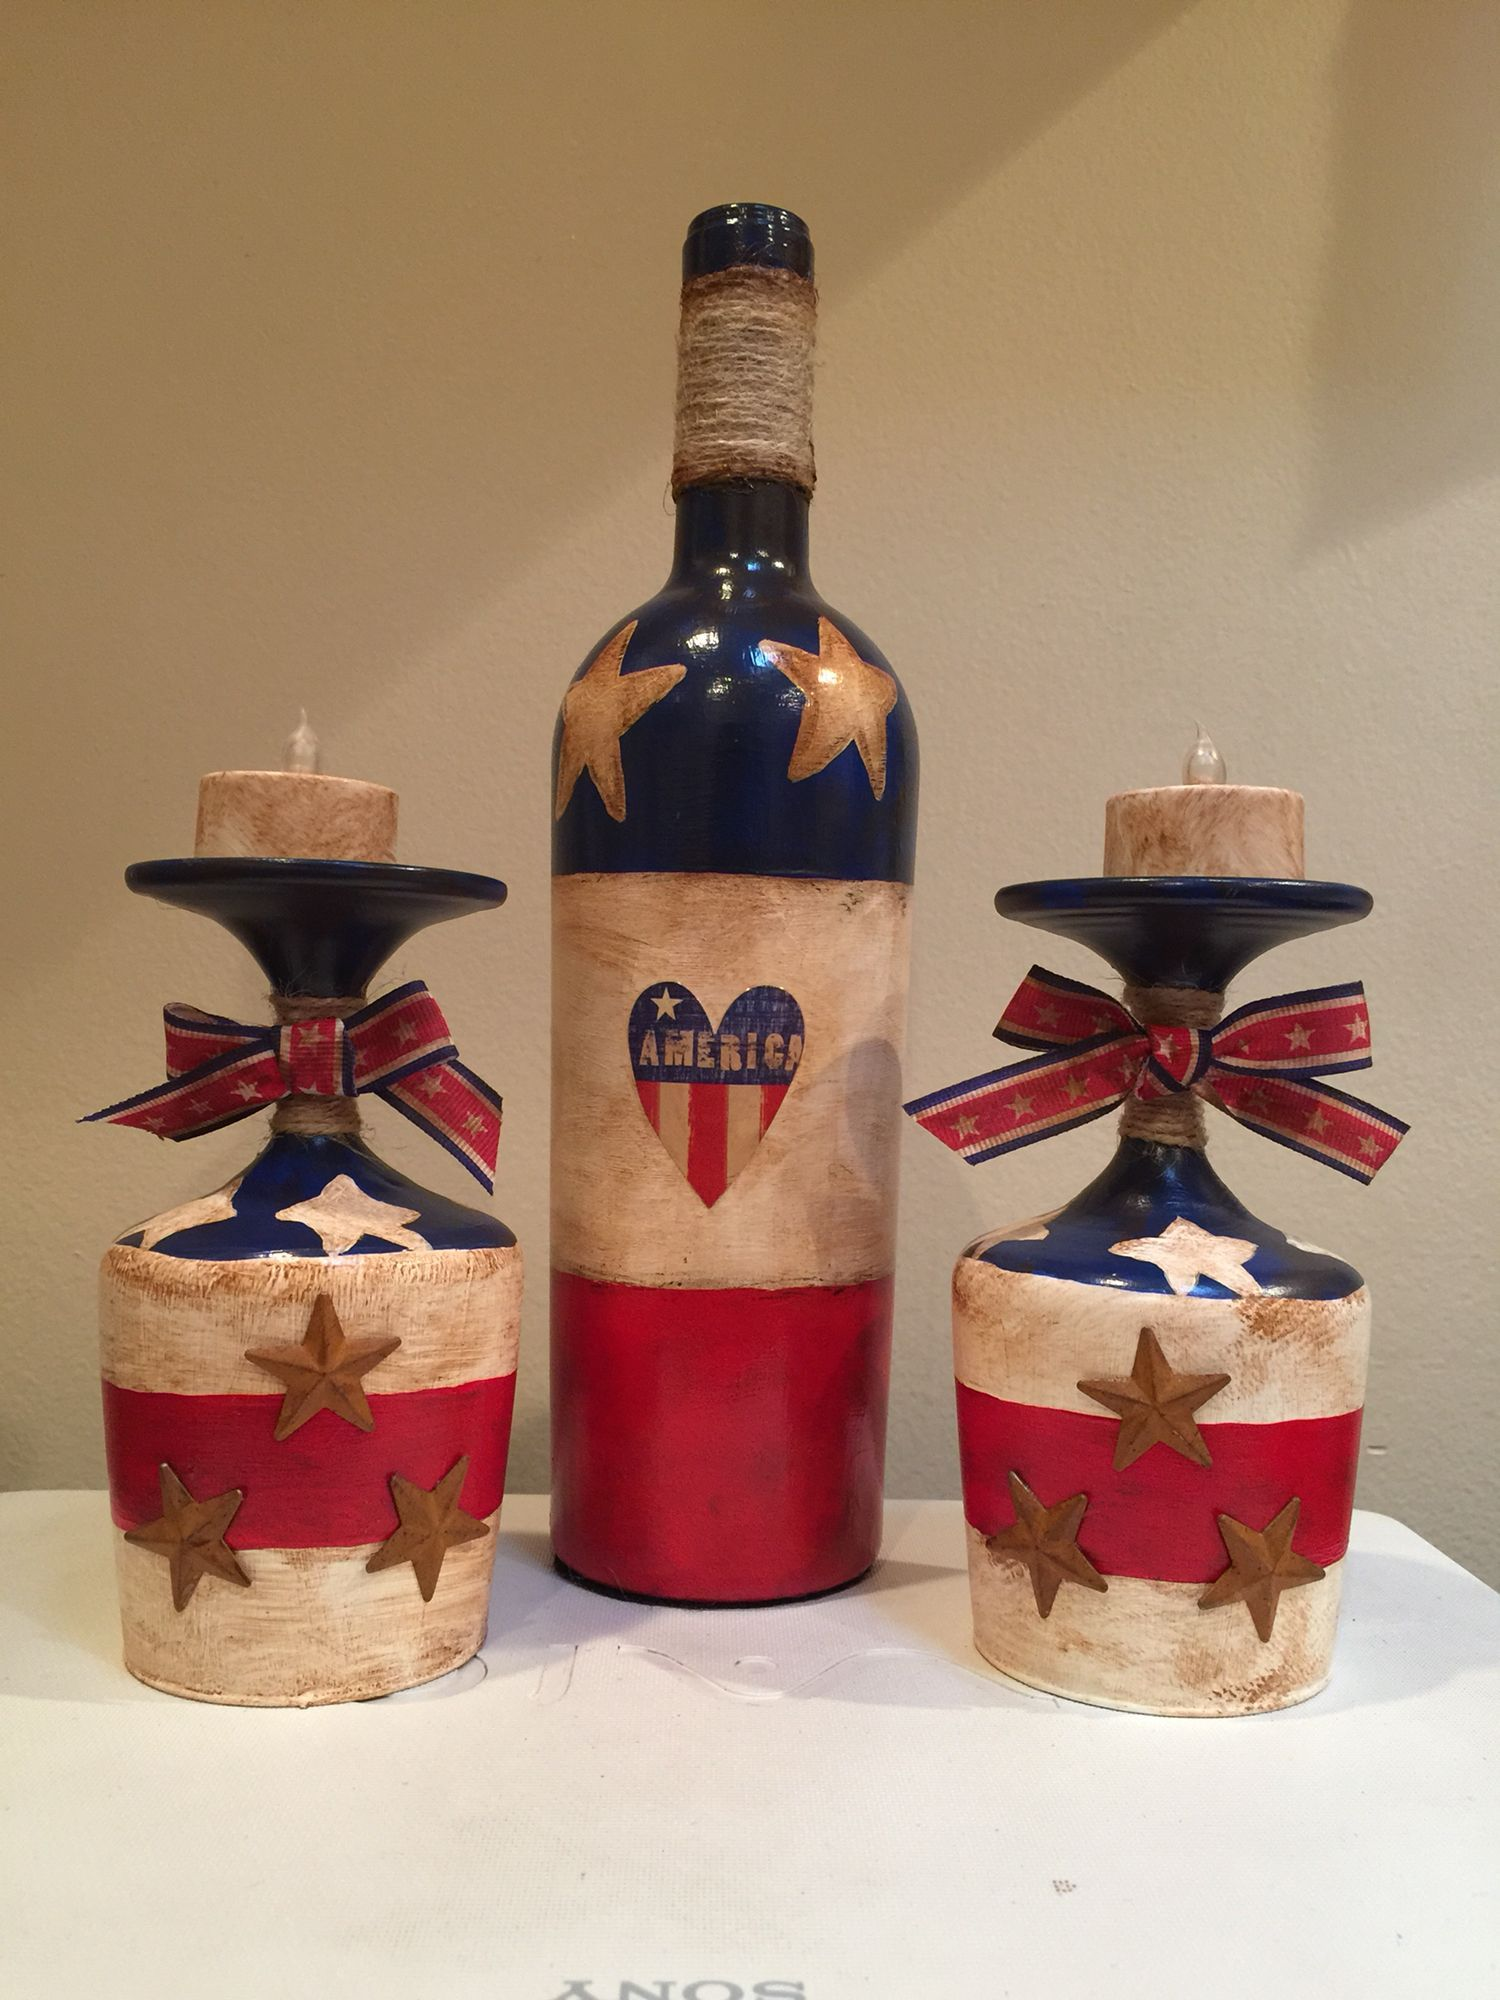 Hand Painted Wine Bottle And Candle Holders 4th Of July Dec Hand Painted Wine Bottles Painted Wine Bottles Wine Bottle Crafts